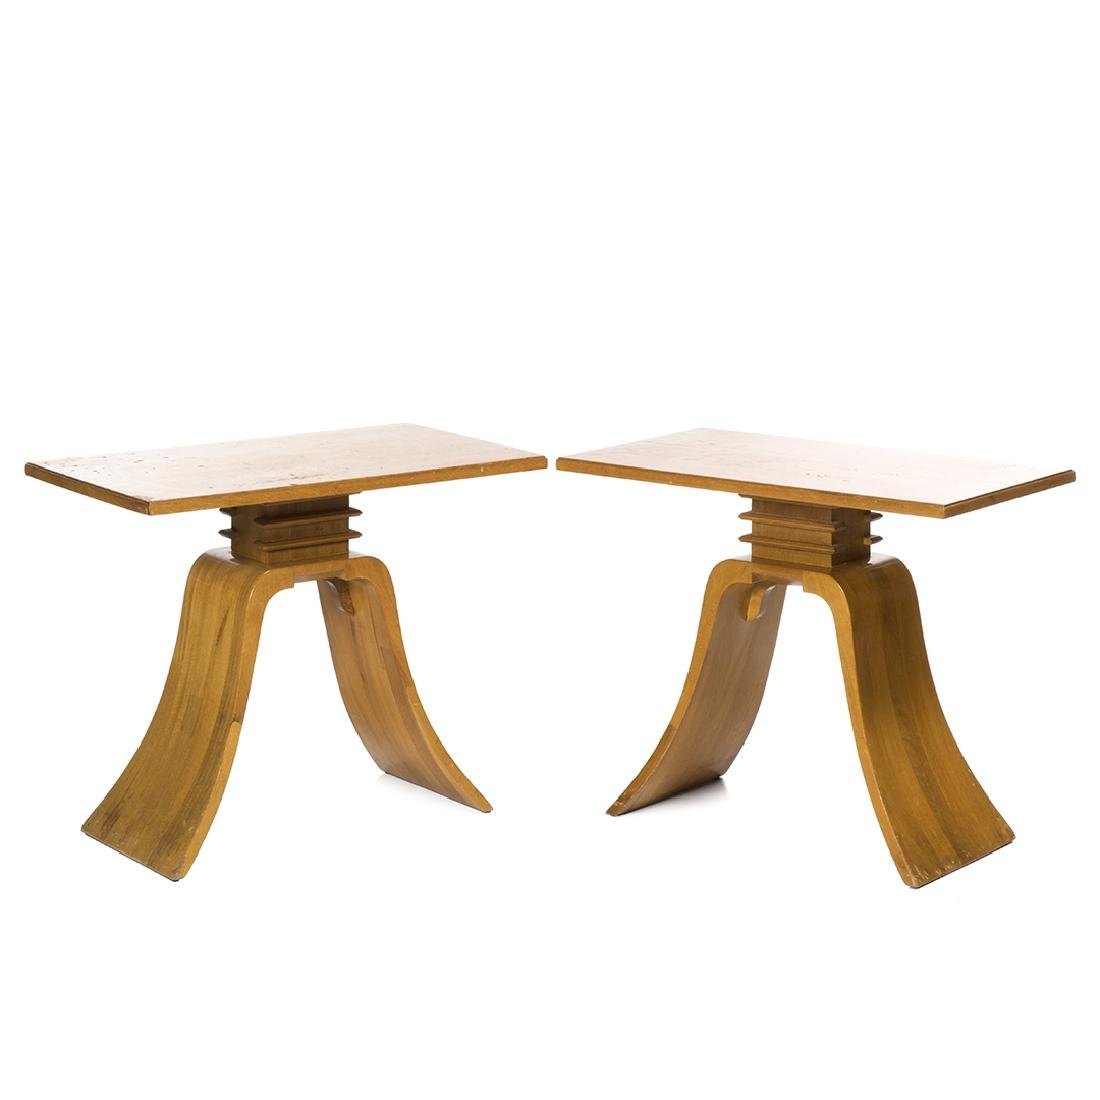 Paul Frankl Occasional Tables (2)